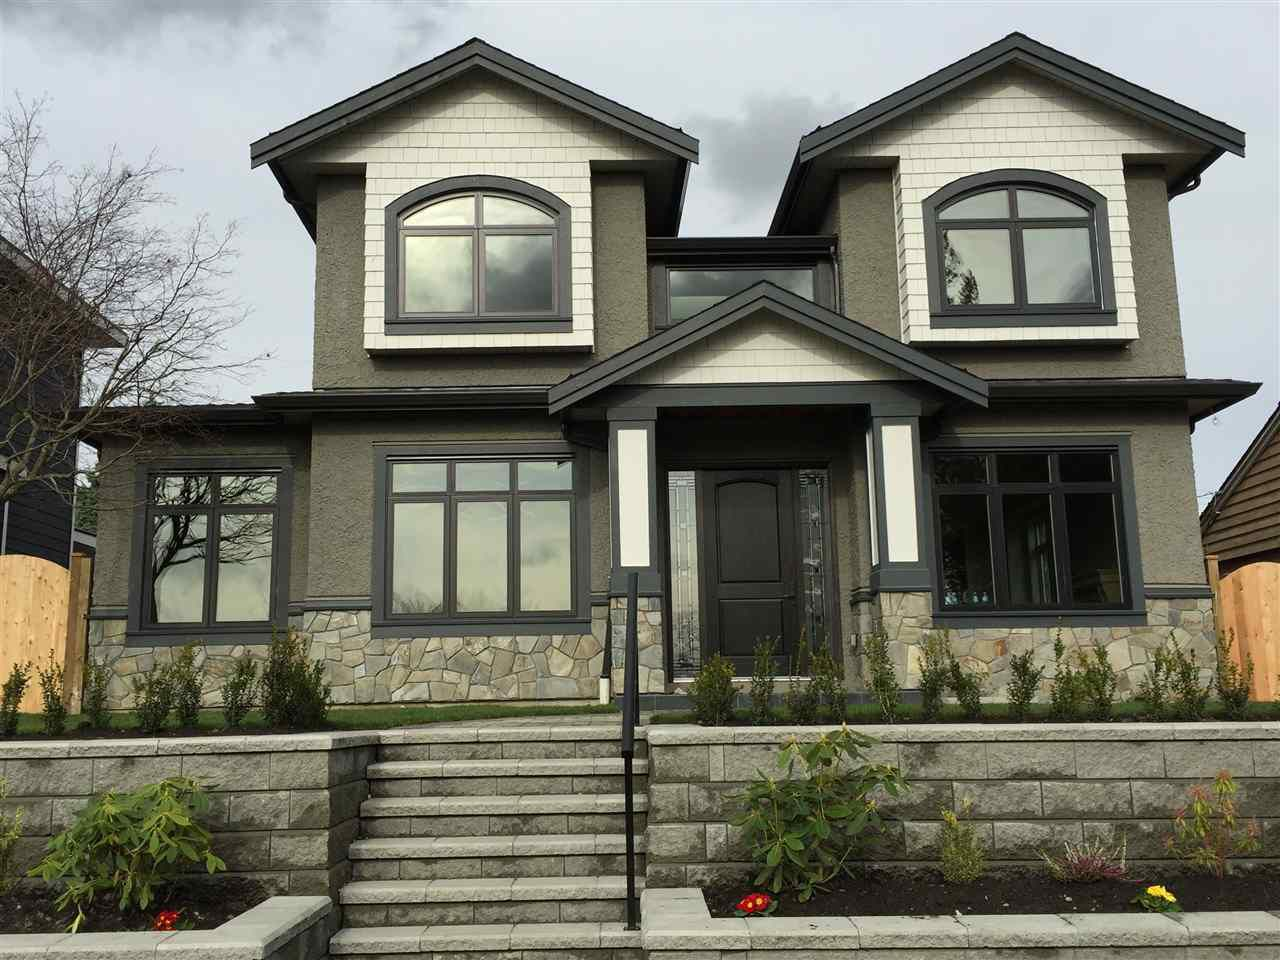 Main Photo: 6535 CLINTON Street in Burnaby: South Slope House for sale (Burnaby South)  : MLS®# R2126721